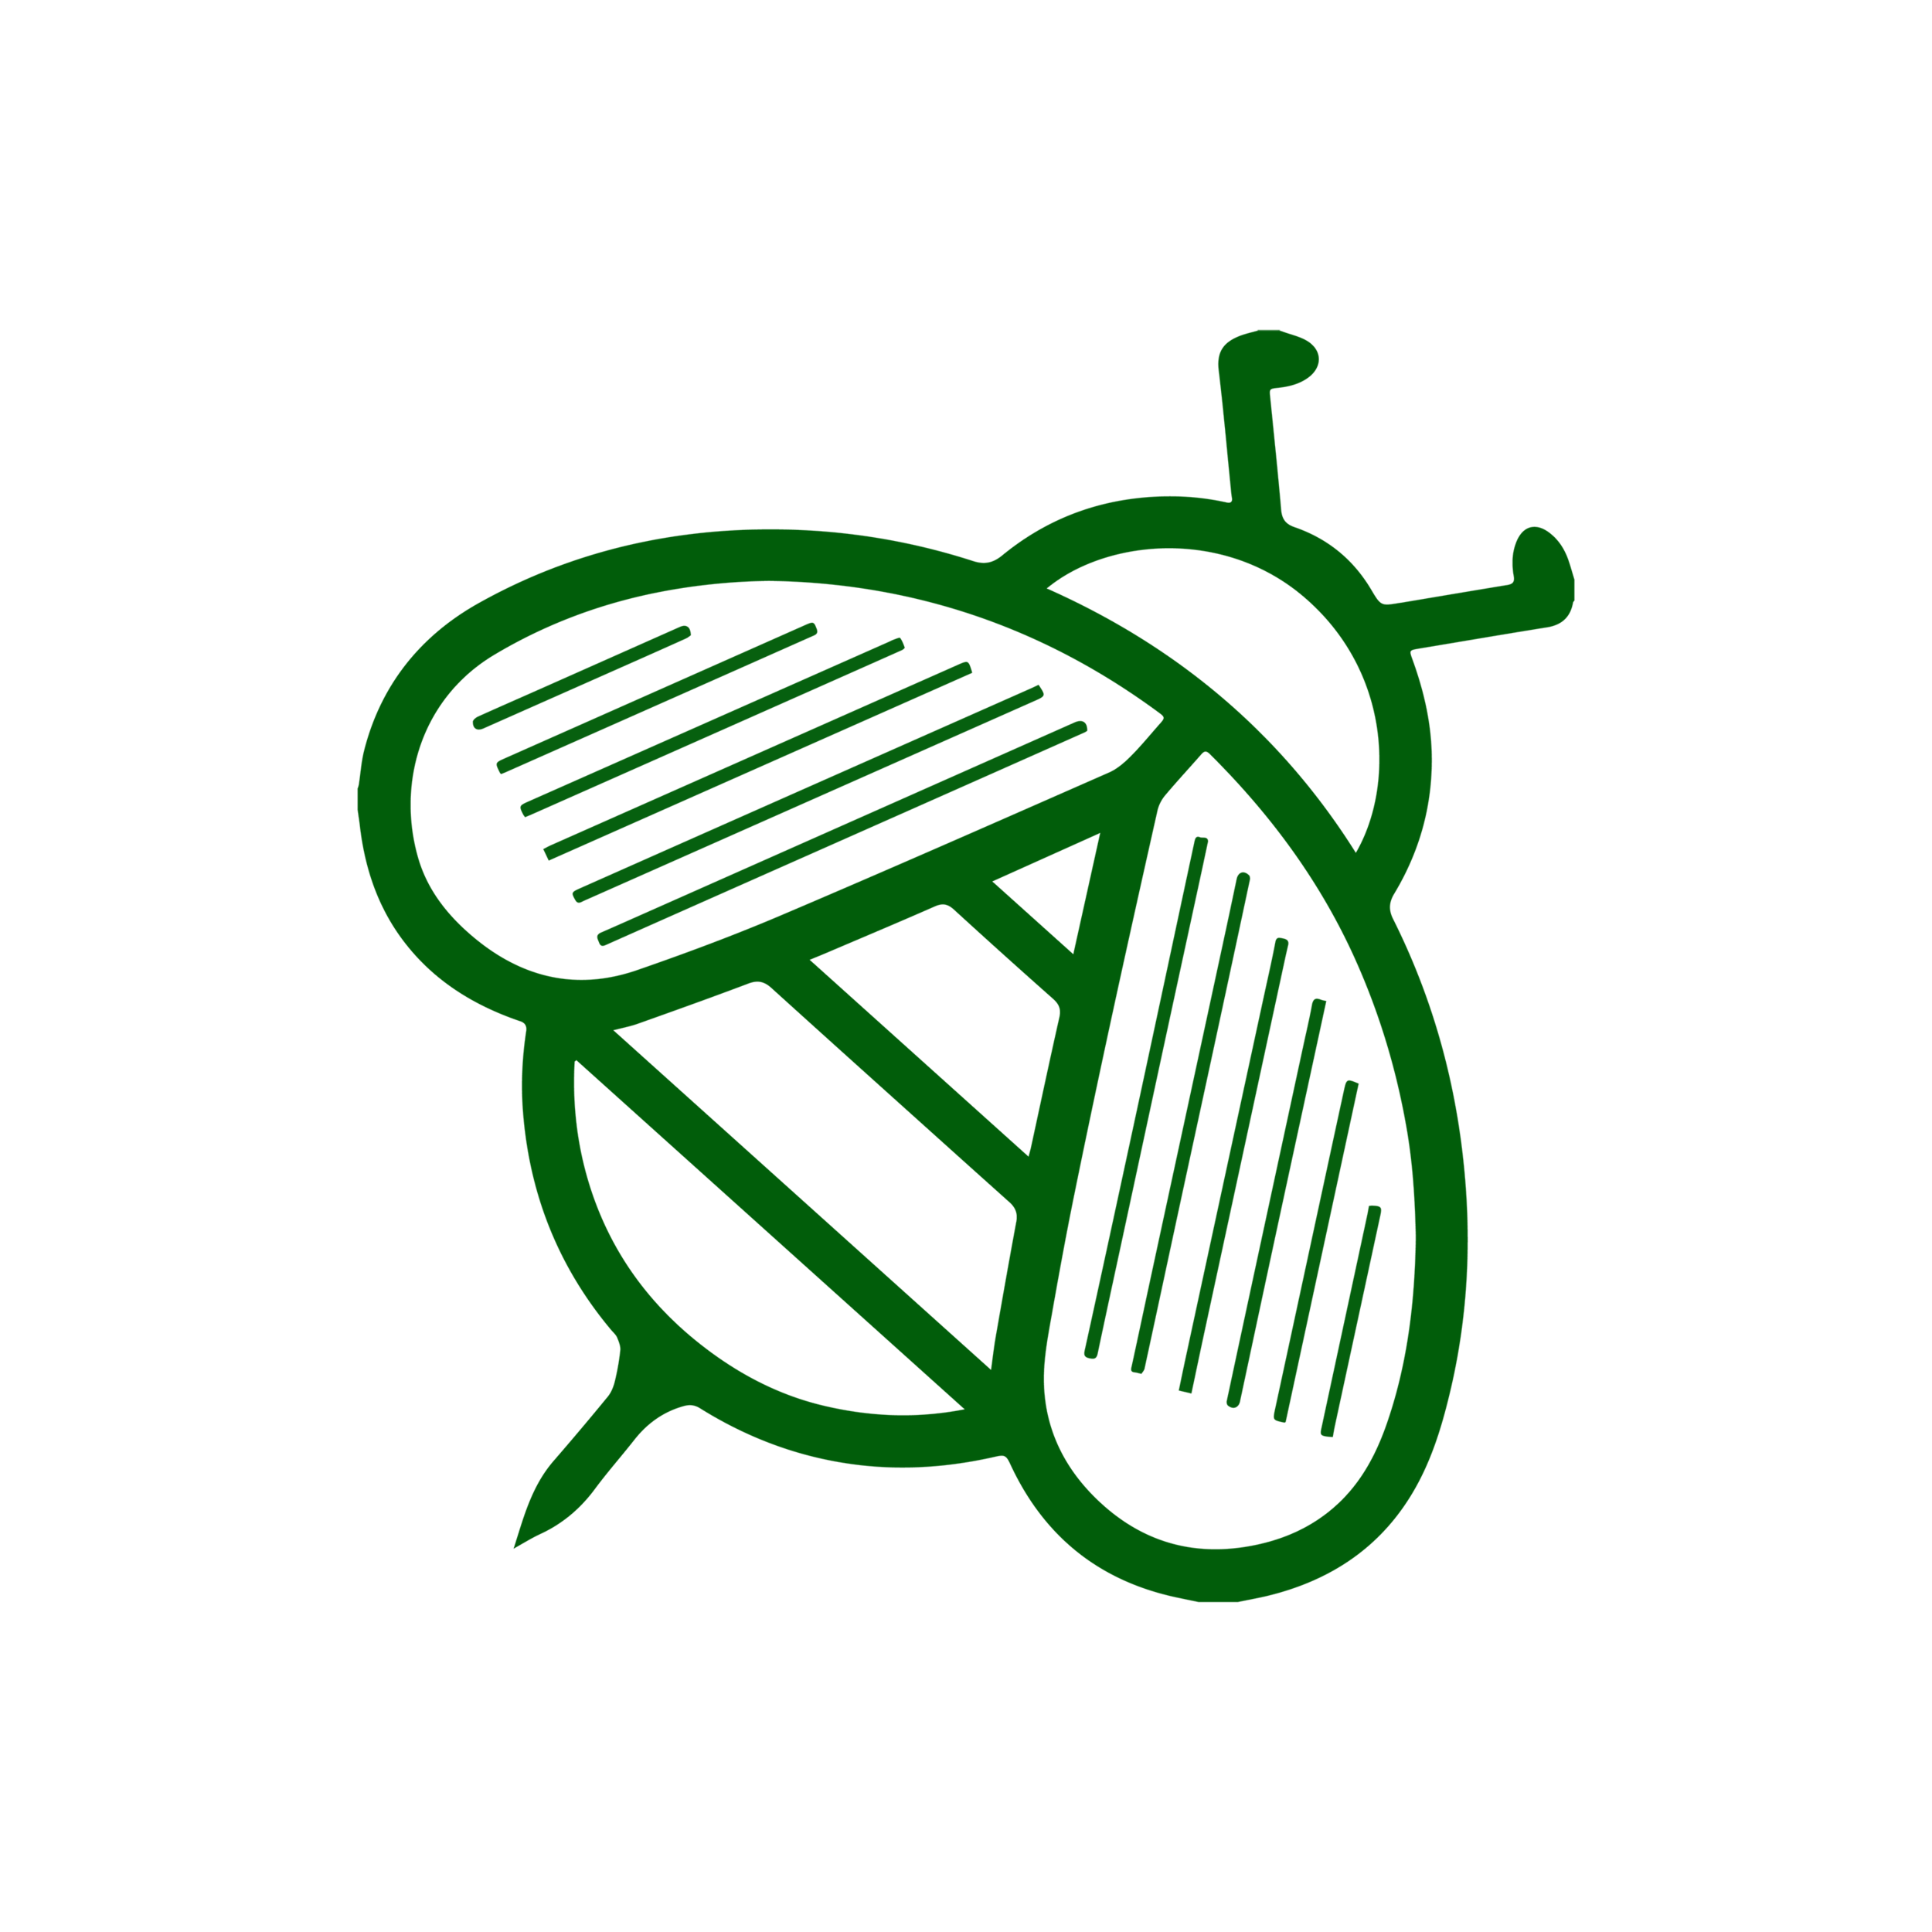 bee-icon_social-media_3000x3000.png